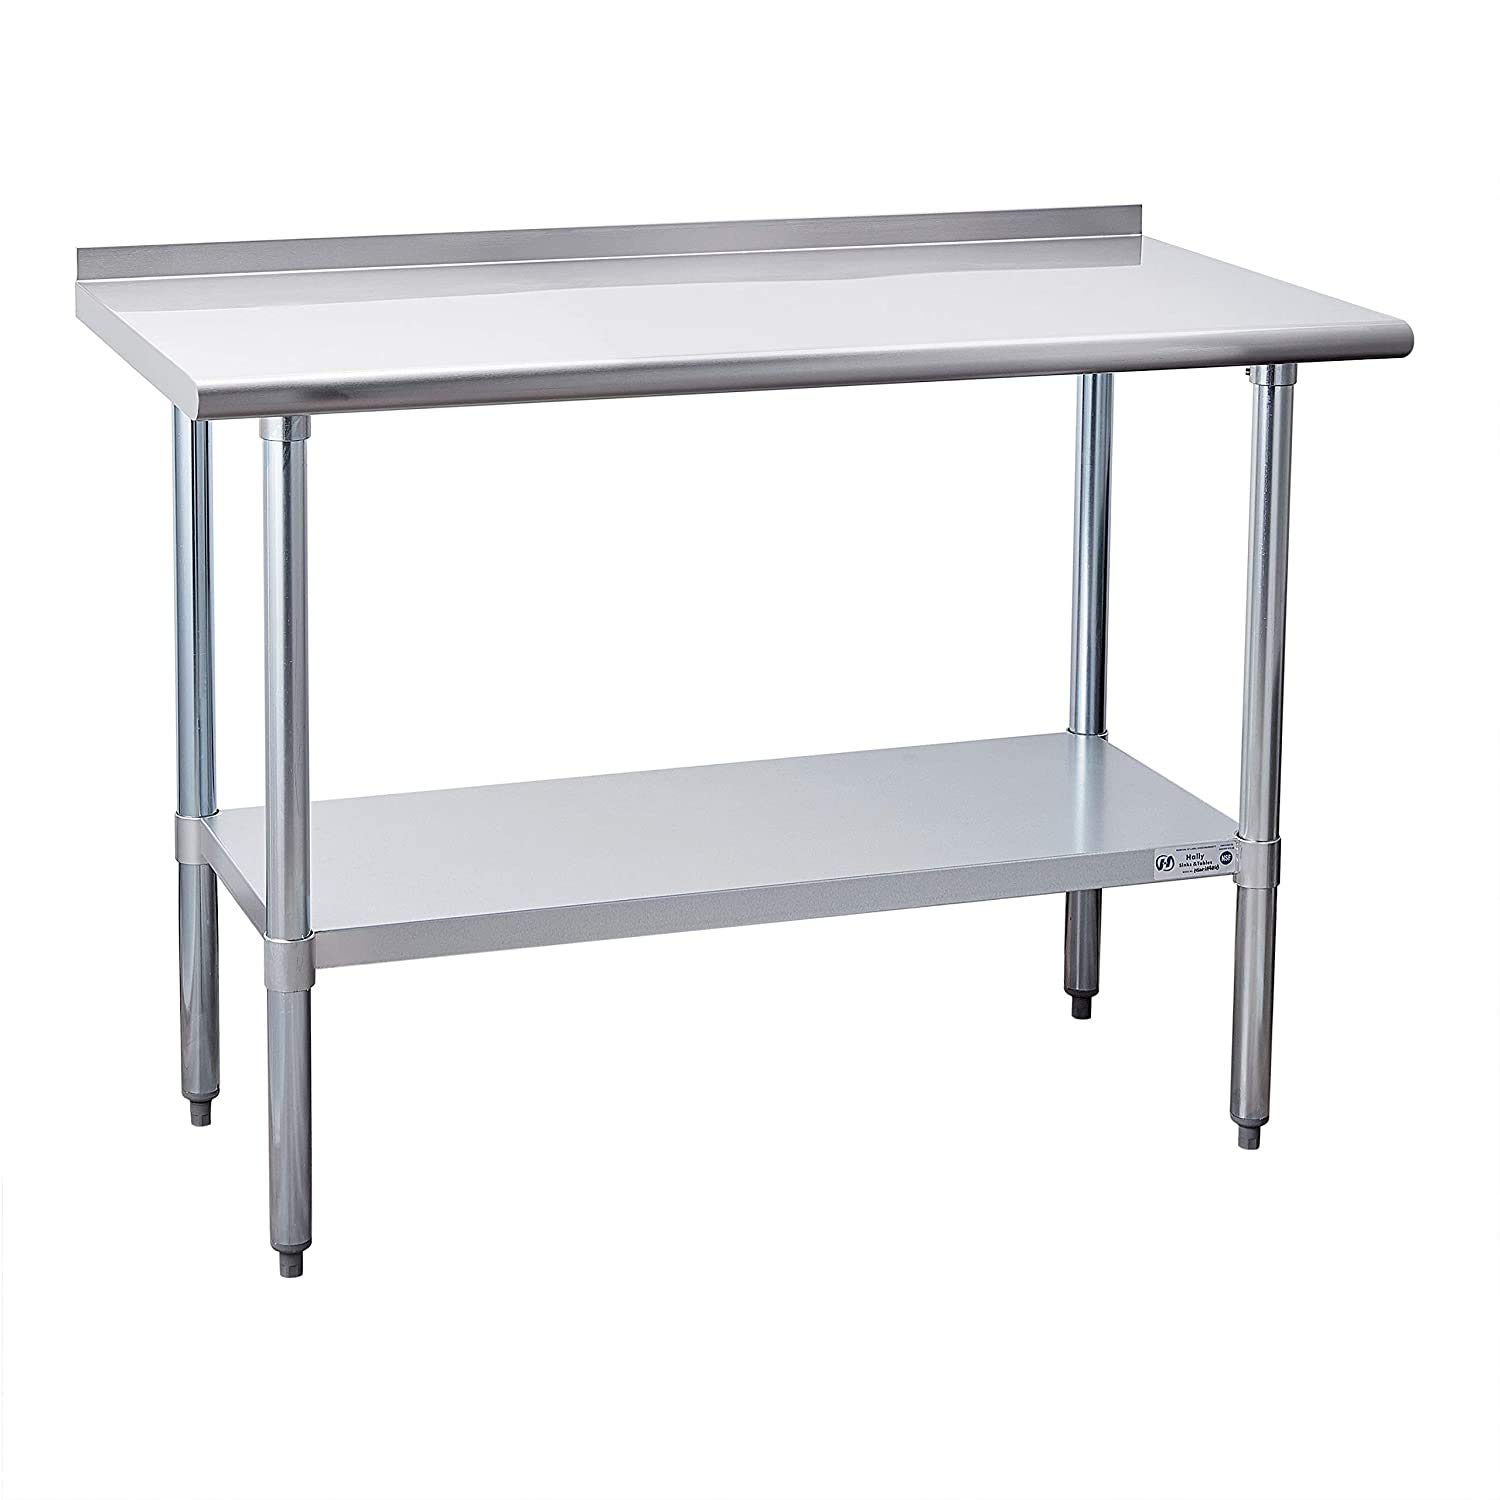 Hally Sinks Tables Miami Mall Over item handling H Stainless Steel Work Prep for 24 Table